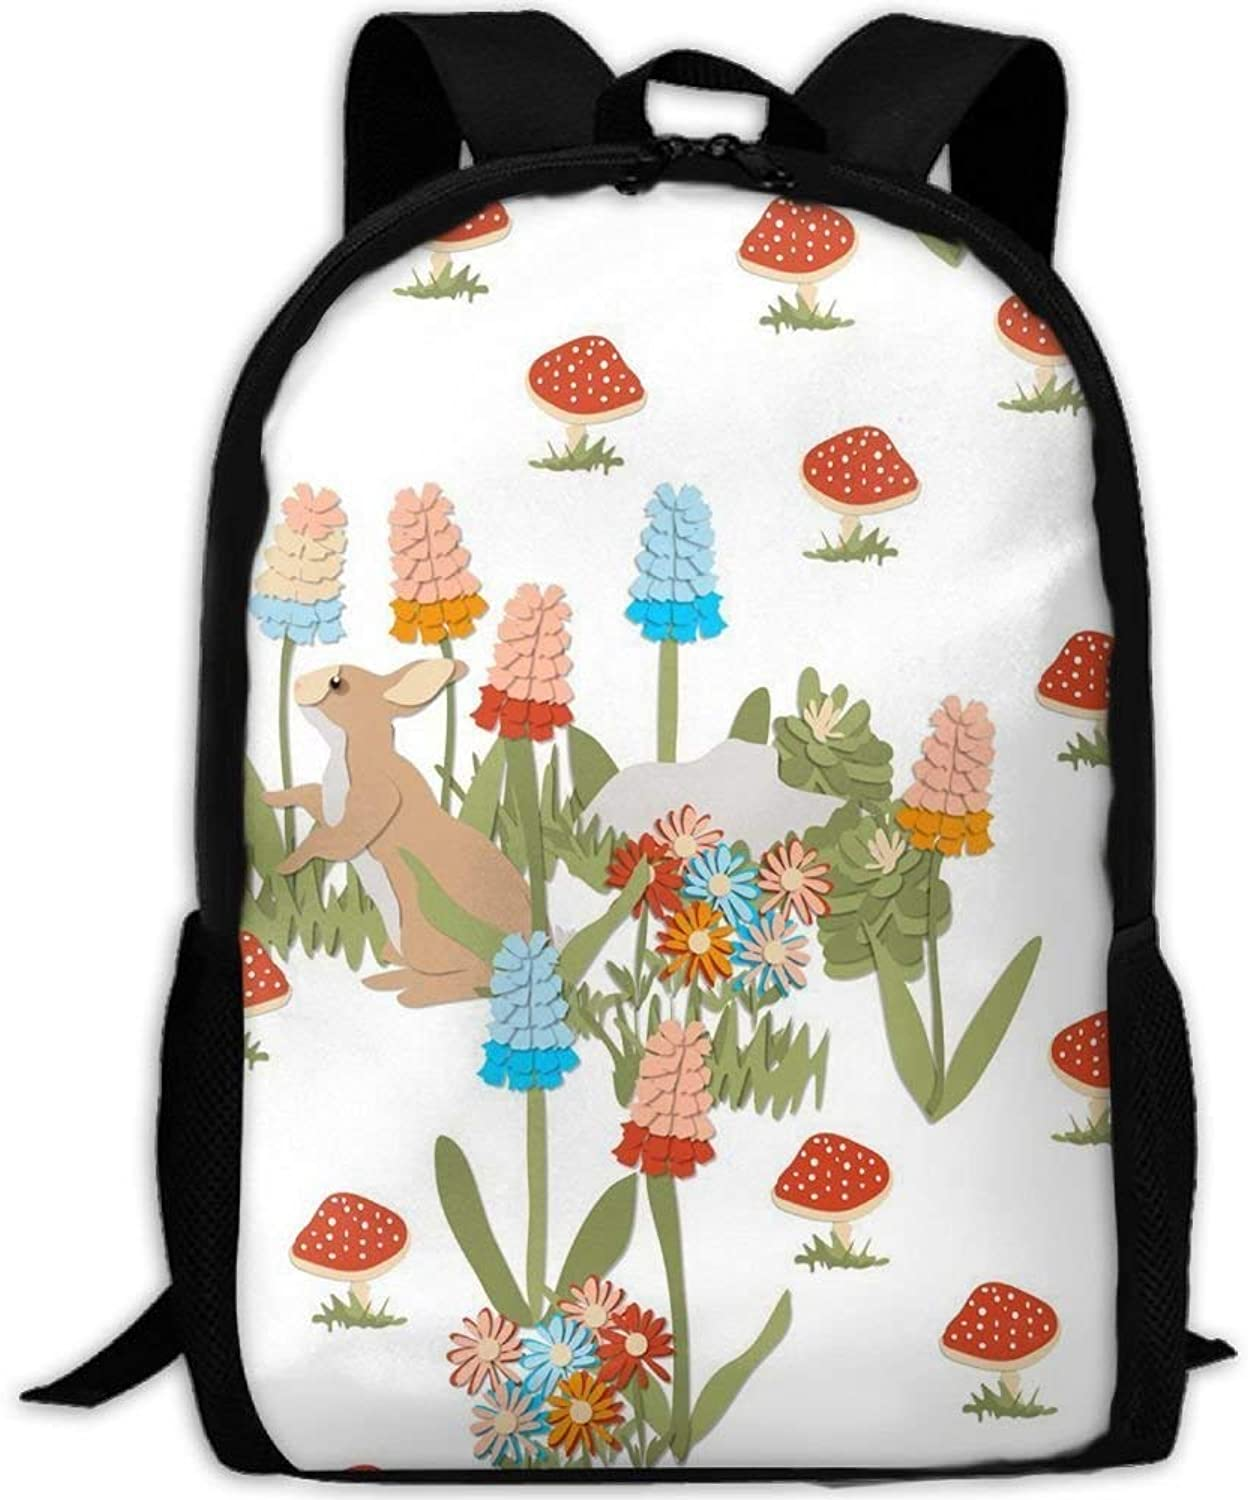 Student Backpack, School Backpack for Laptop,Most Durable Lightweight Cute Travel Water Resistant School Backpack - Bunny In The GNOME Garden B07PZN7N1V  Langfristiger Ruf